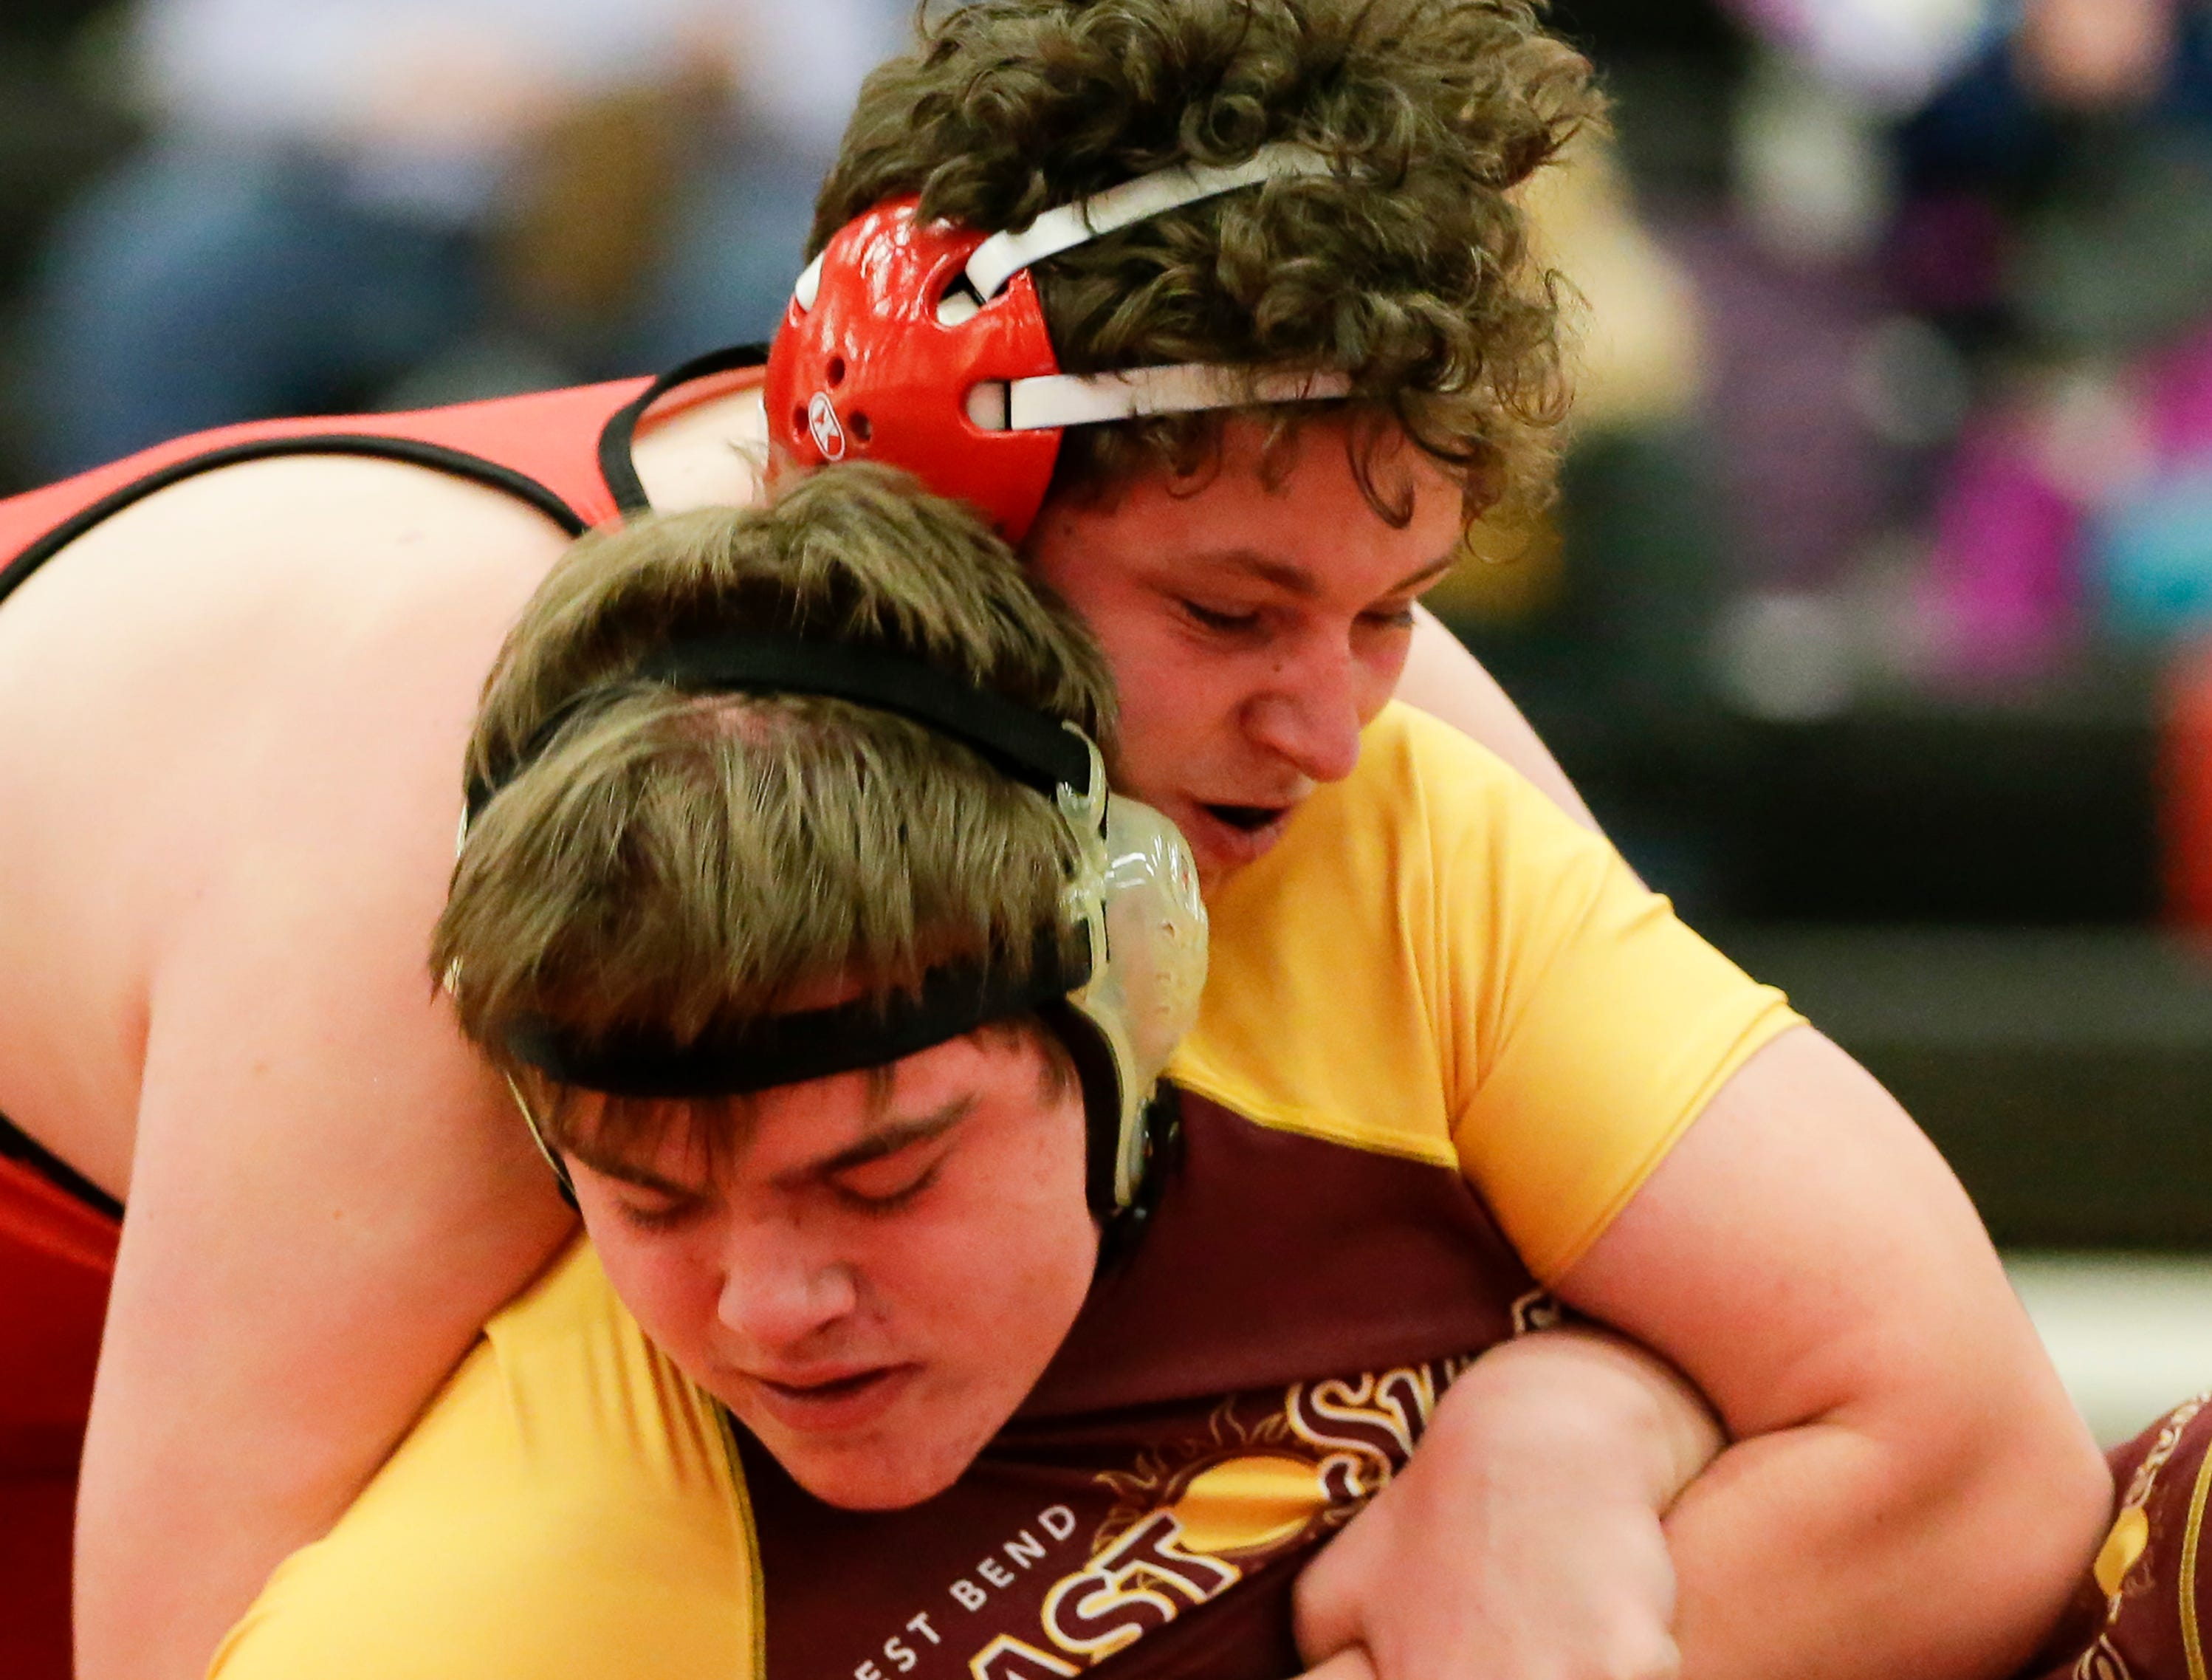 Sheboygan South's Mitchell Prueser wrestles West Bend East's Dorn Champagne in the 220 weight class during the WIAA D1 Regionals at Manitowoc Lincoln High School Saturday, February 9, 2019, in Manitowoc, Wis. Joshua Clark/USA TODAY NETWORK-Wisconsin